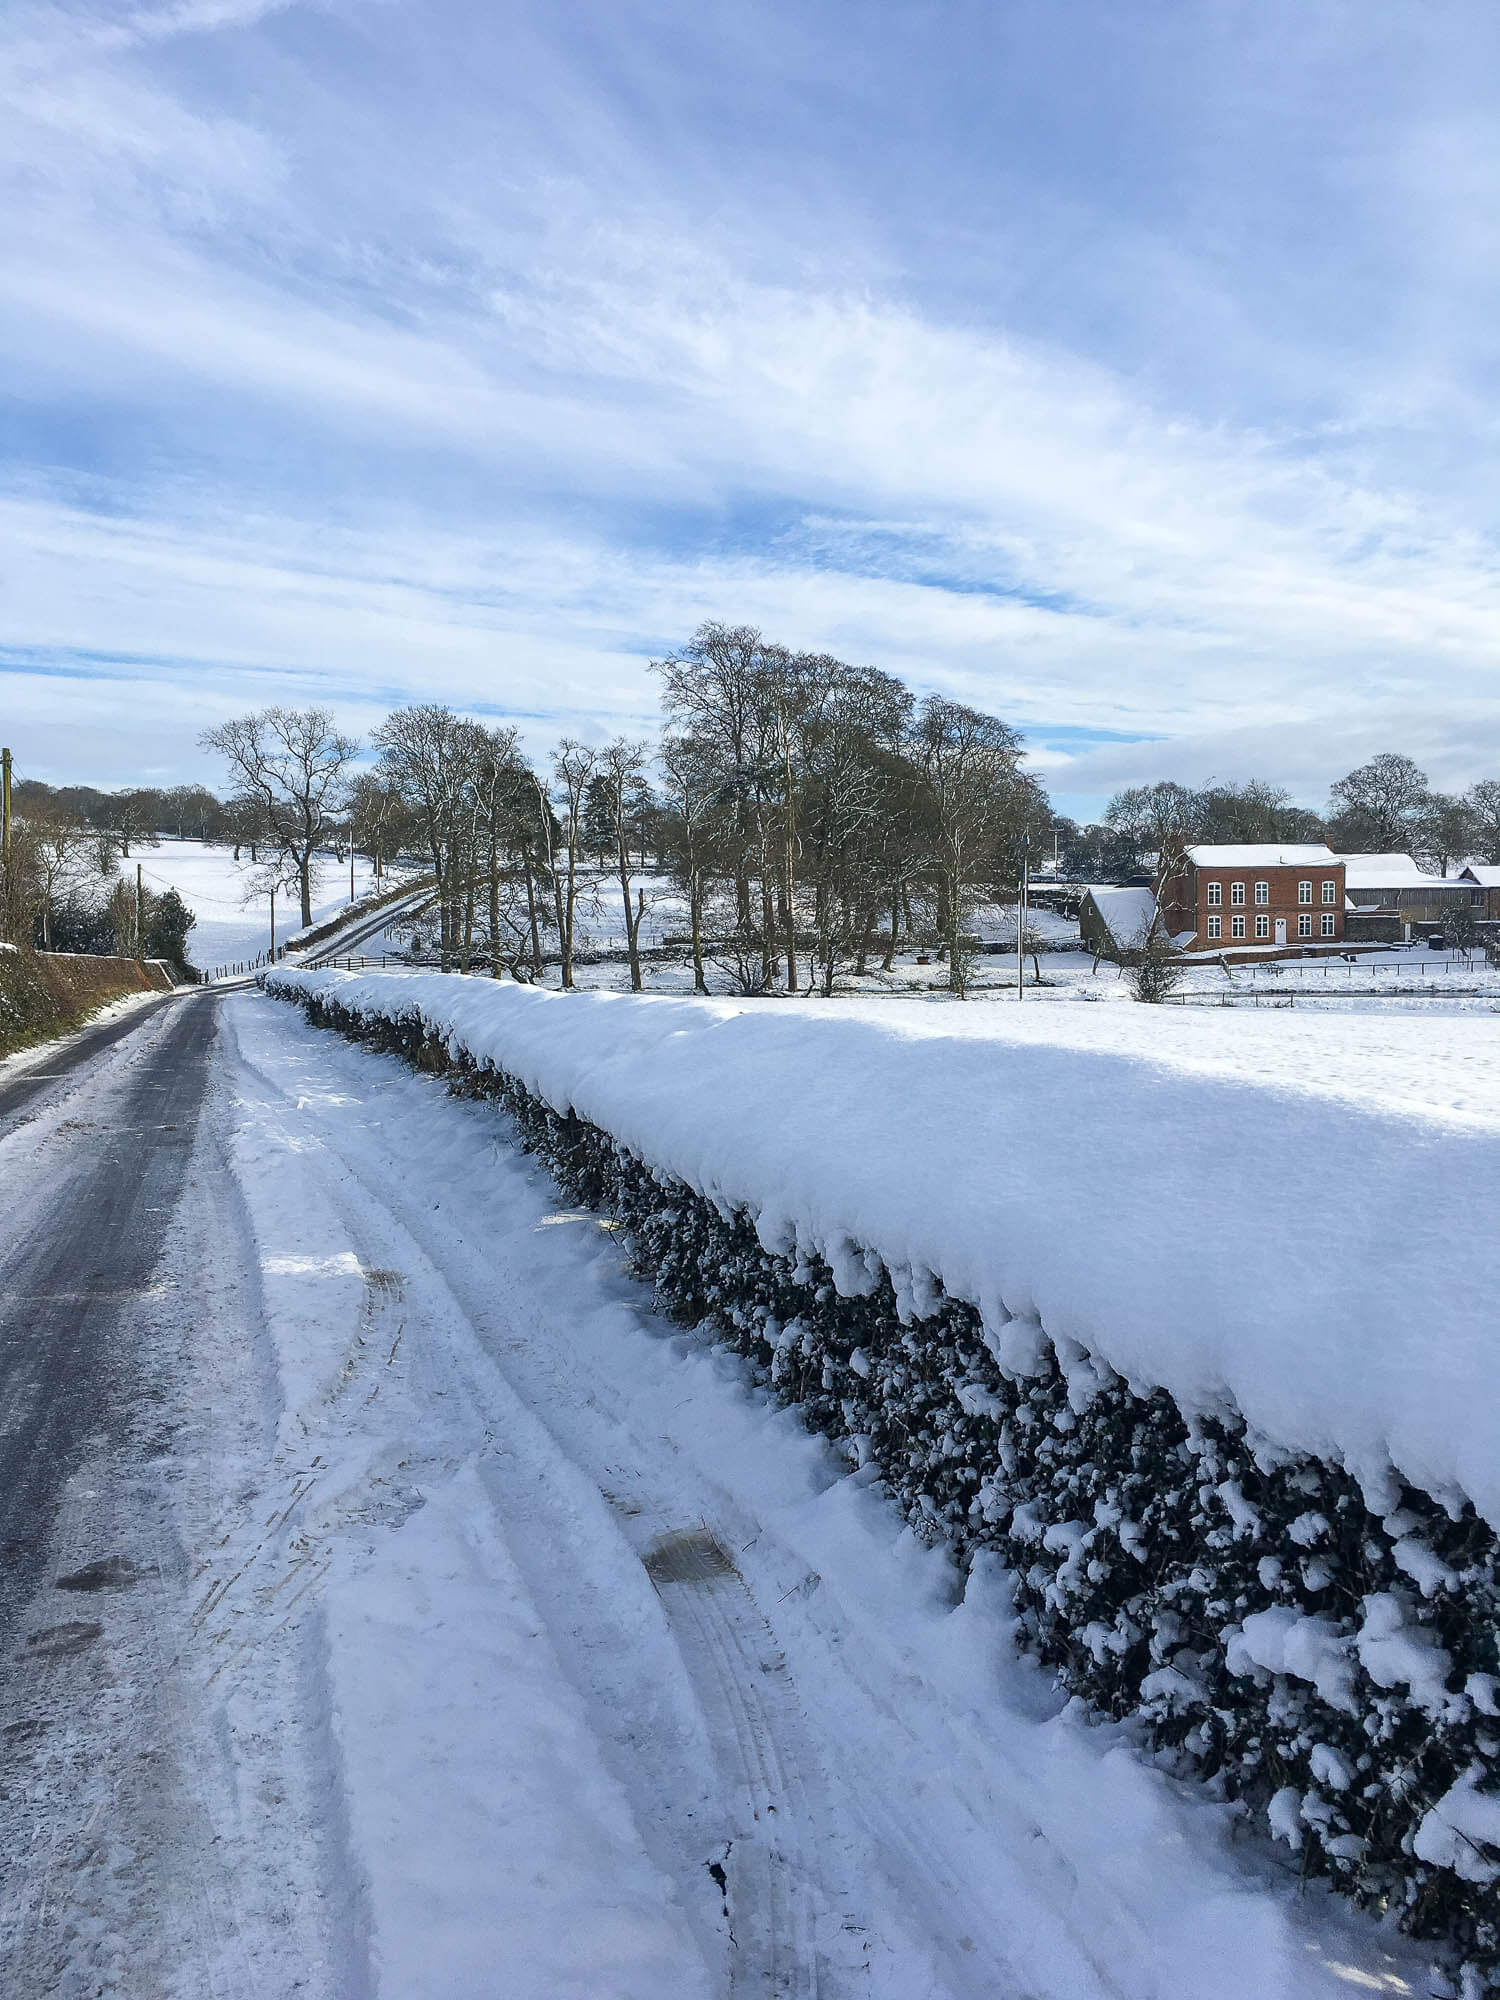 Country lane in snow, Shropshire, UK